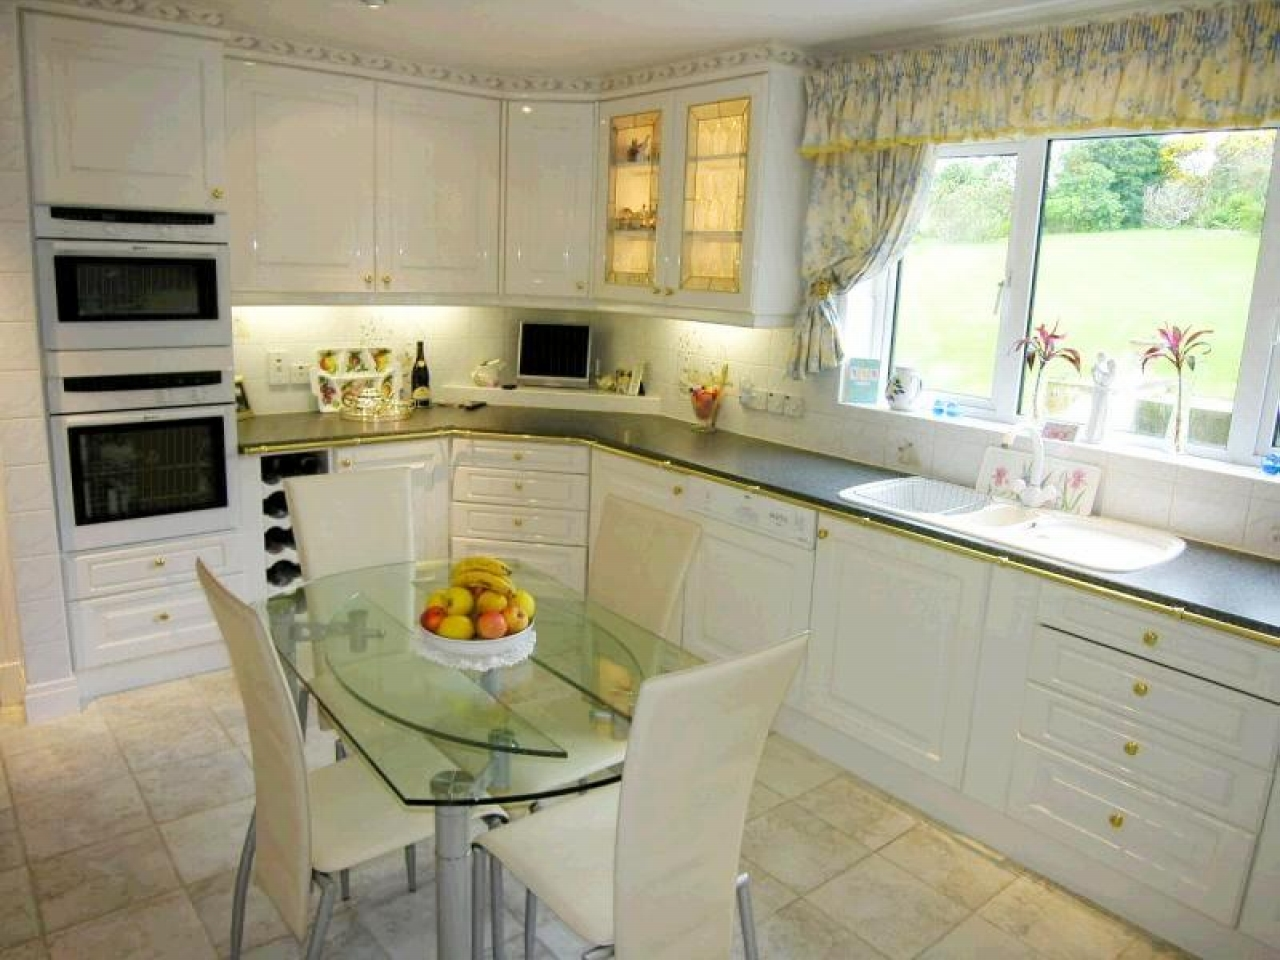 4 bedroom detached house For Sale in Laxey - 6